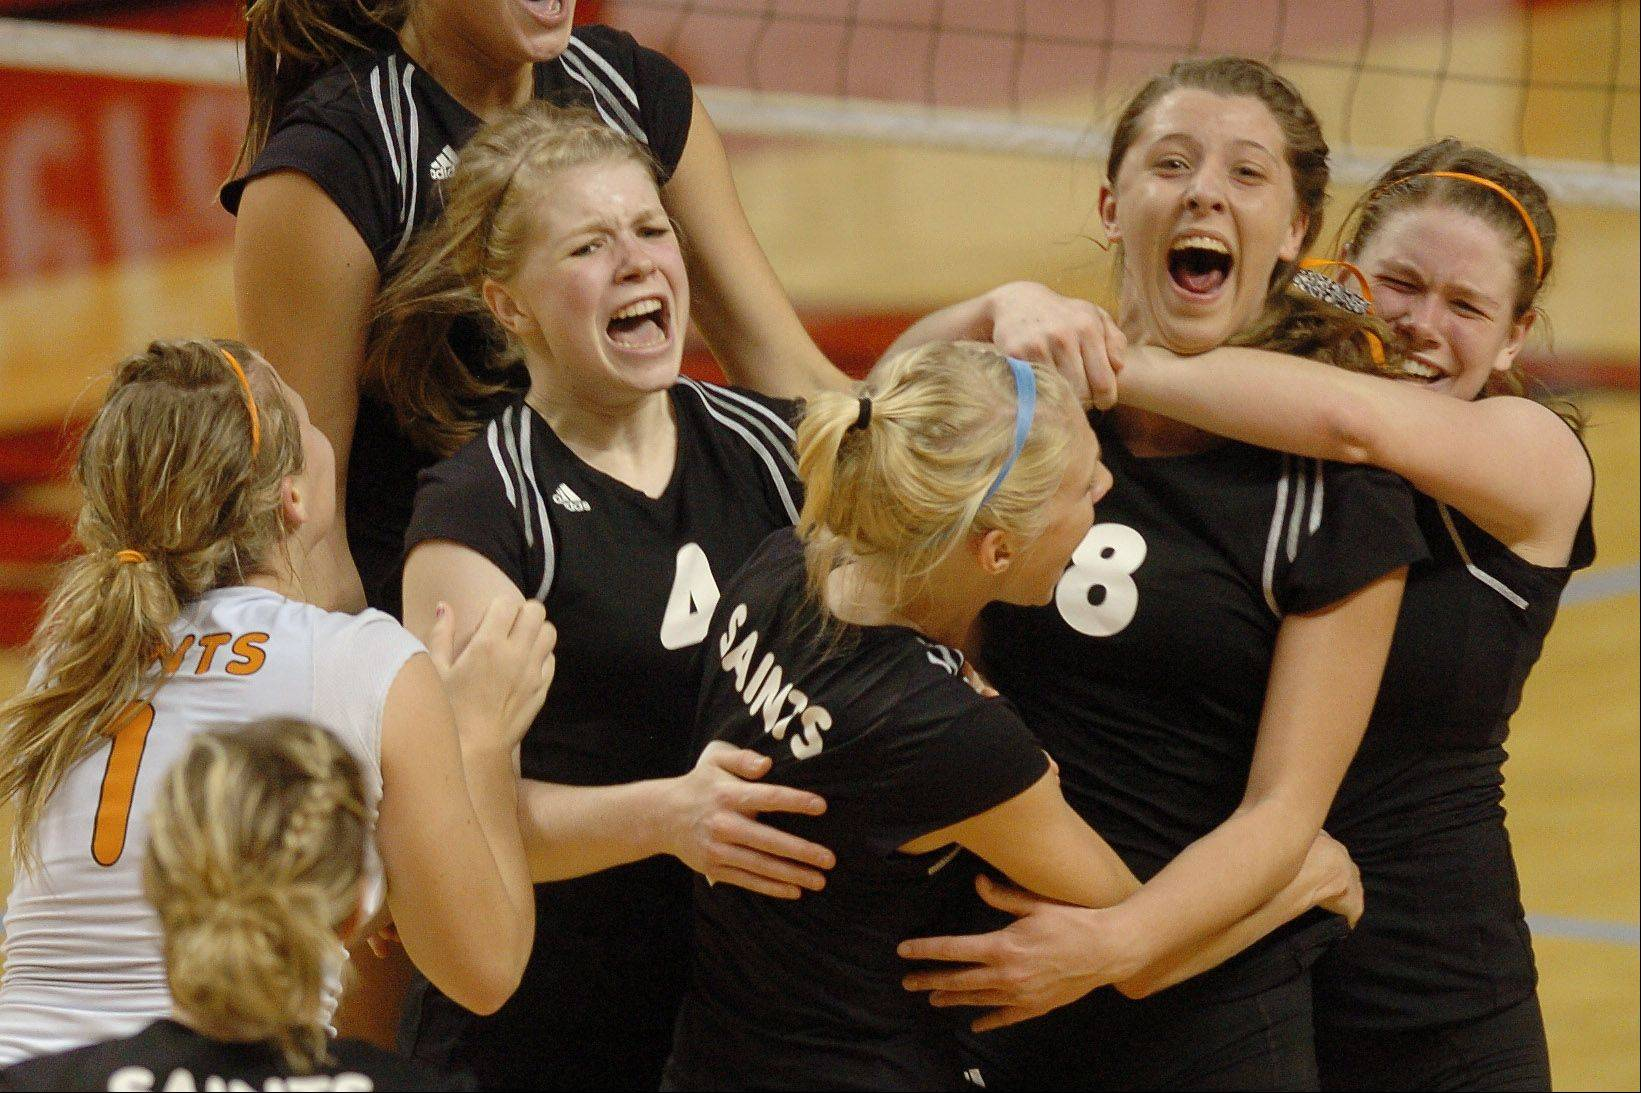 St. Charles East is hoping to bring home the Class 4A state volleyball championship this weekend.